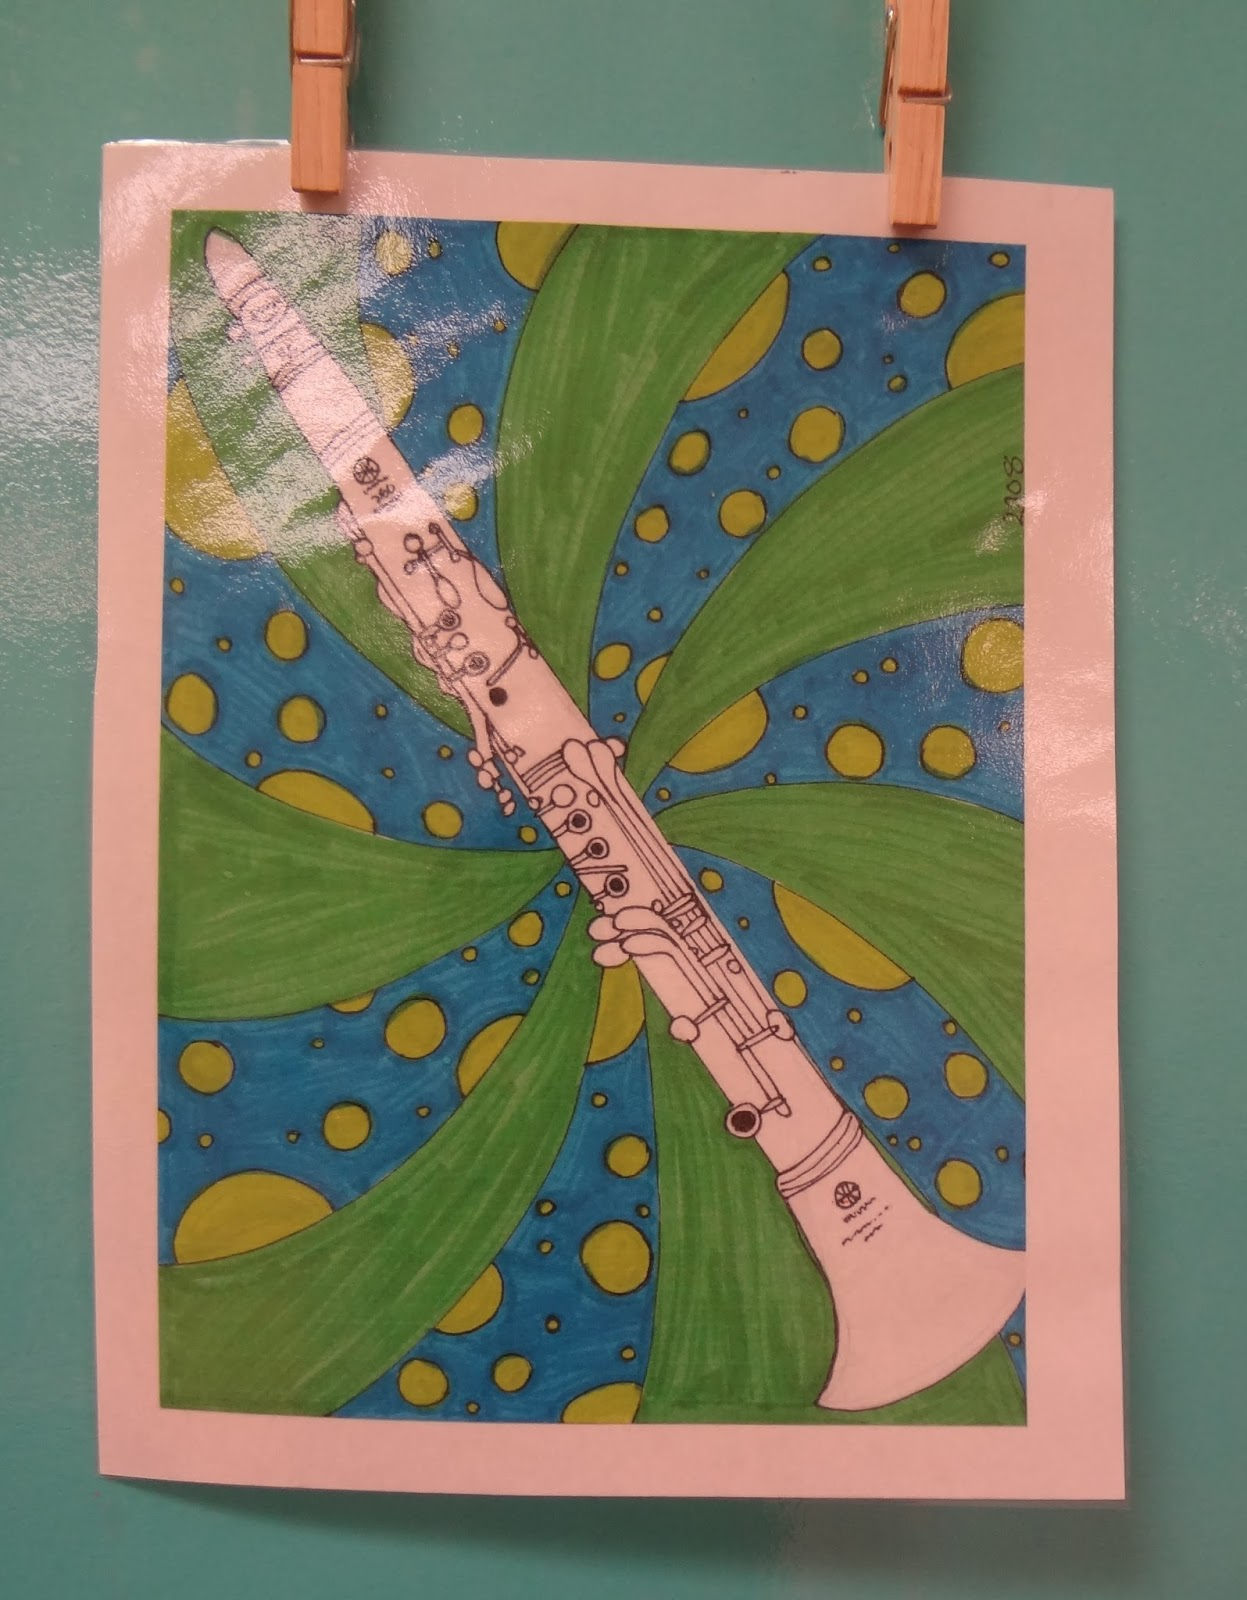 Op art uses color to create - 5th Grade Contour Instruments I Can Create A Contour Line Drawing Of An Instrument I Can Recognize Op Art And The Work Of Bridget Riley And Victor